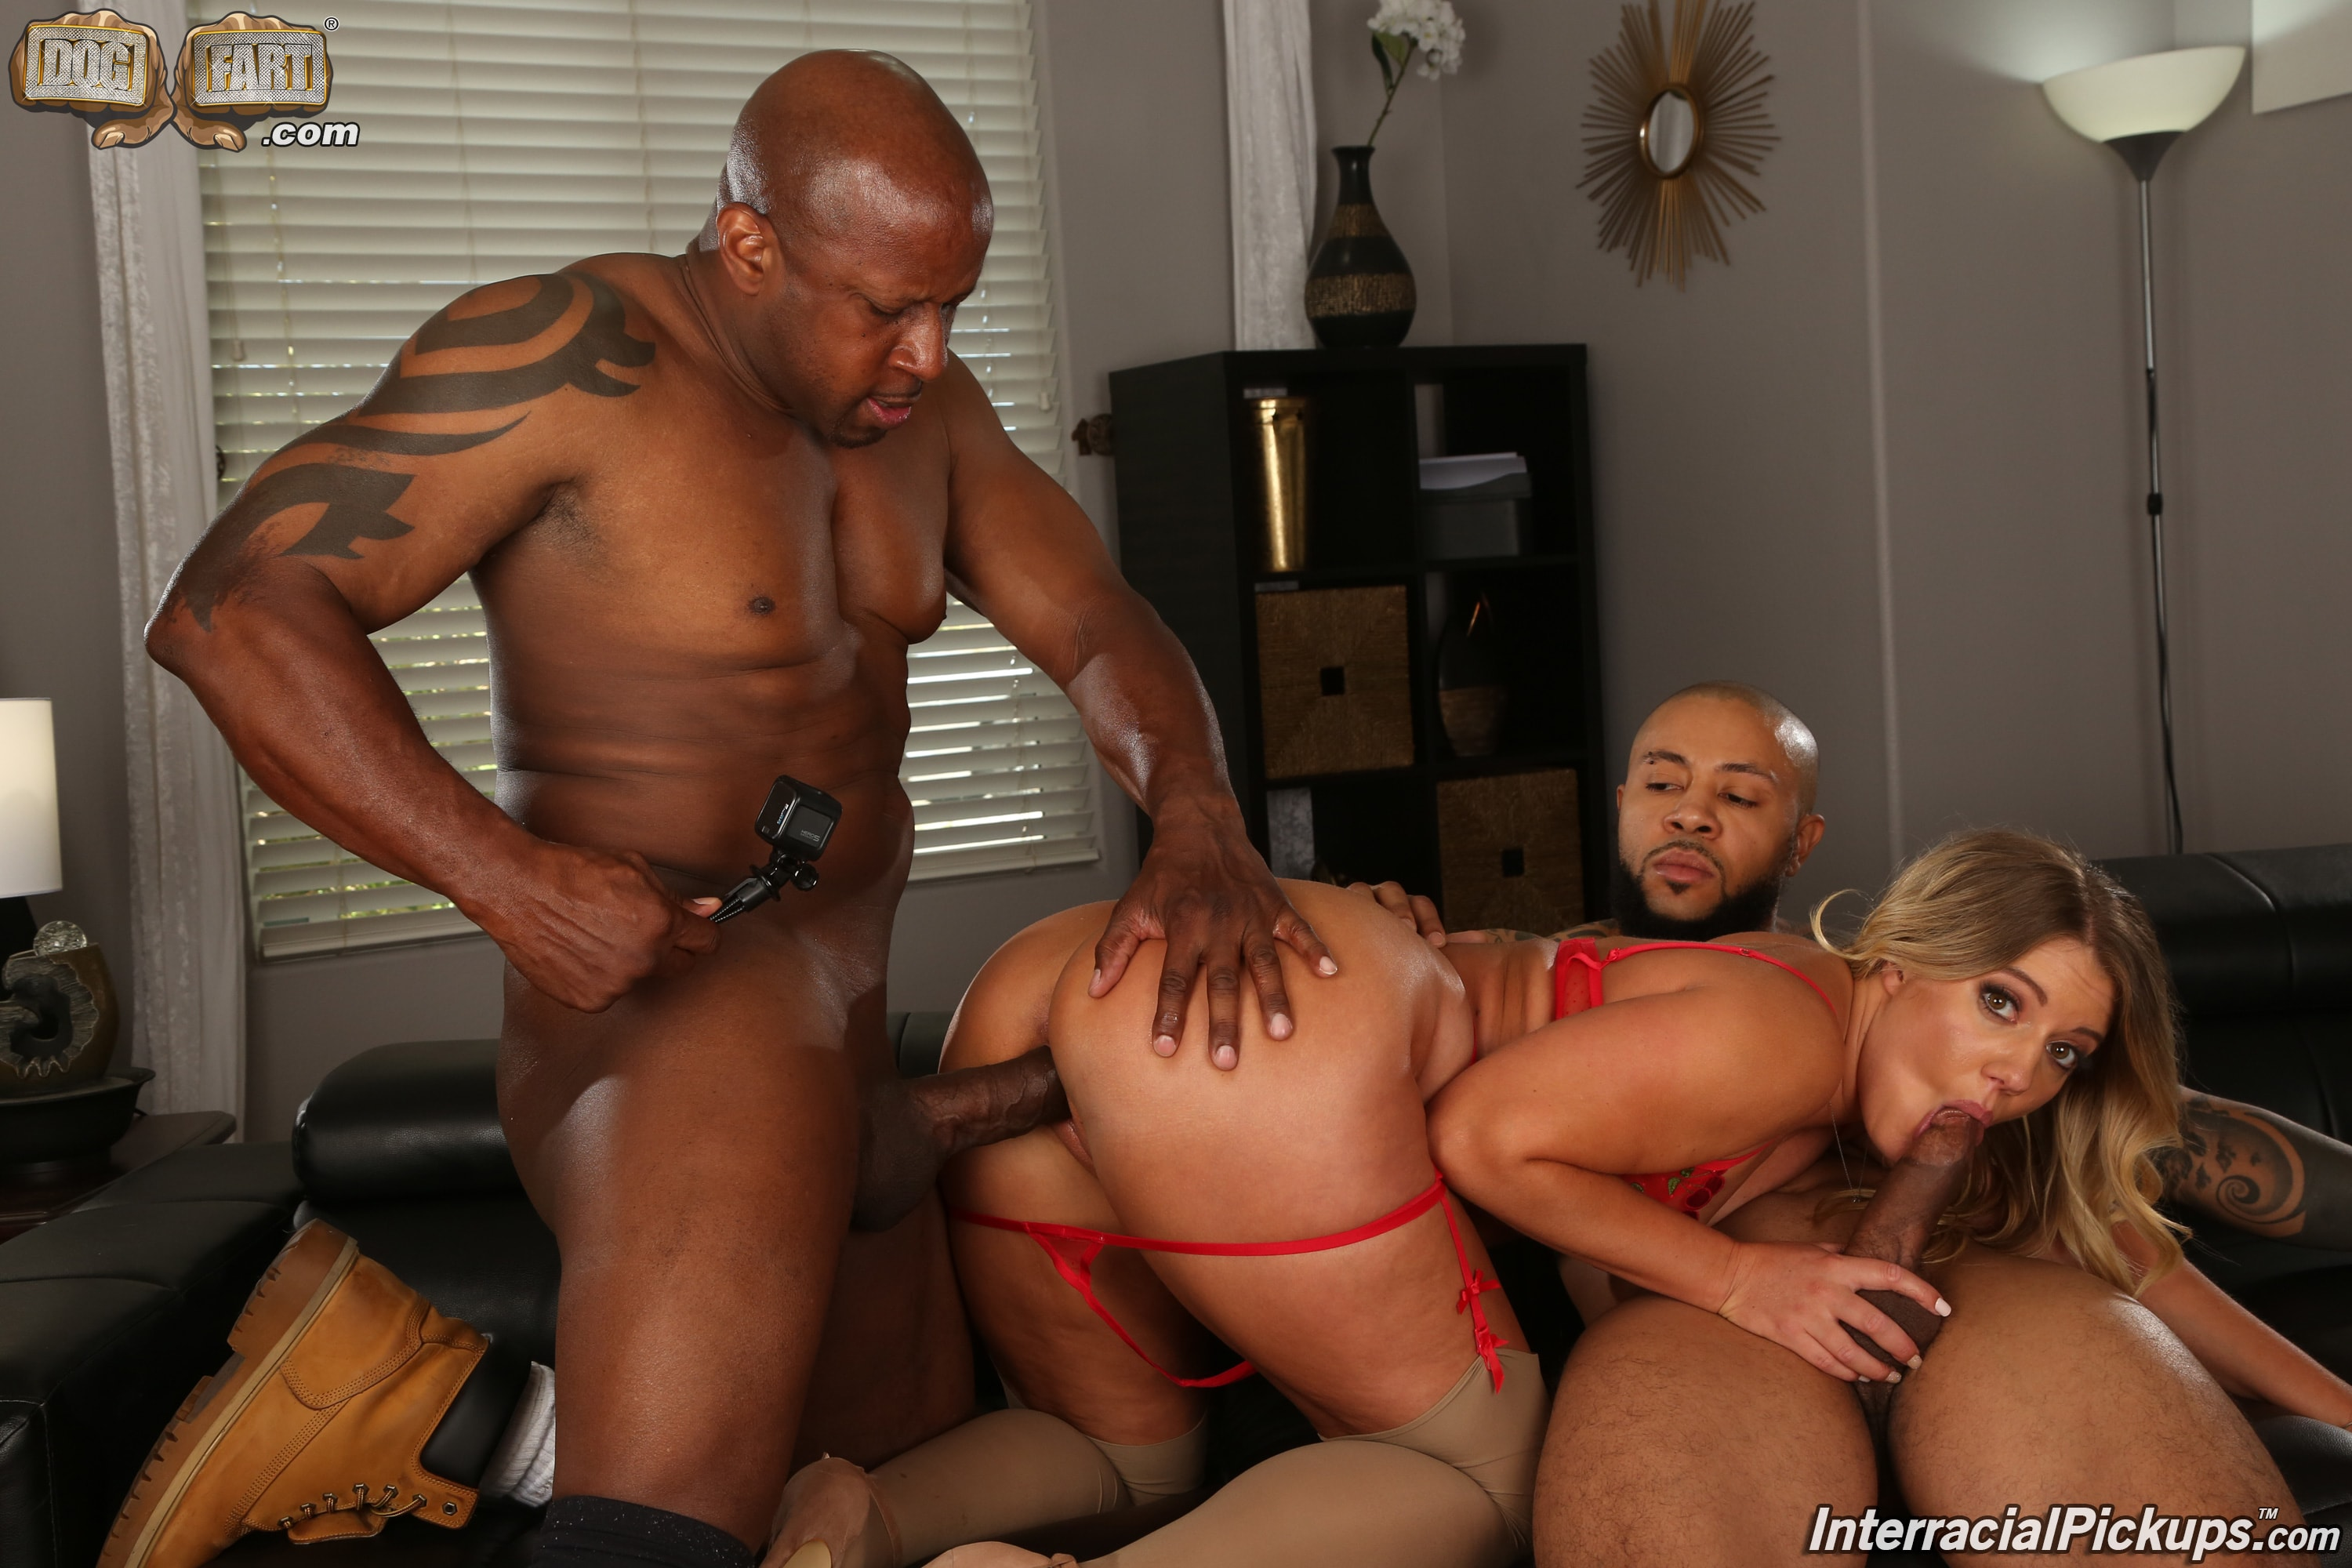 Dogfart '- Interracial Pickups - Scene 2' starring Candice Dare (Photo 16)